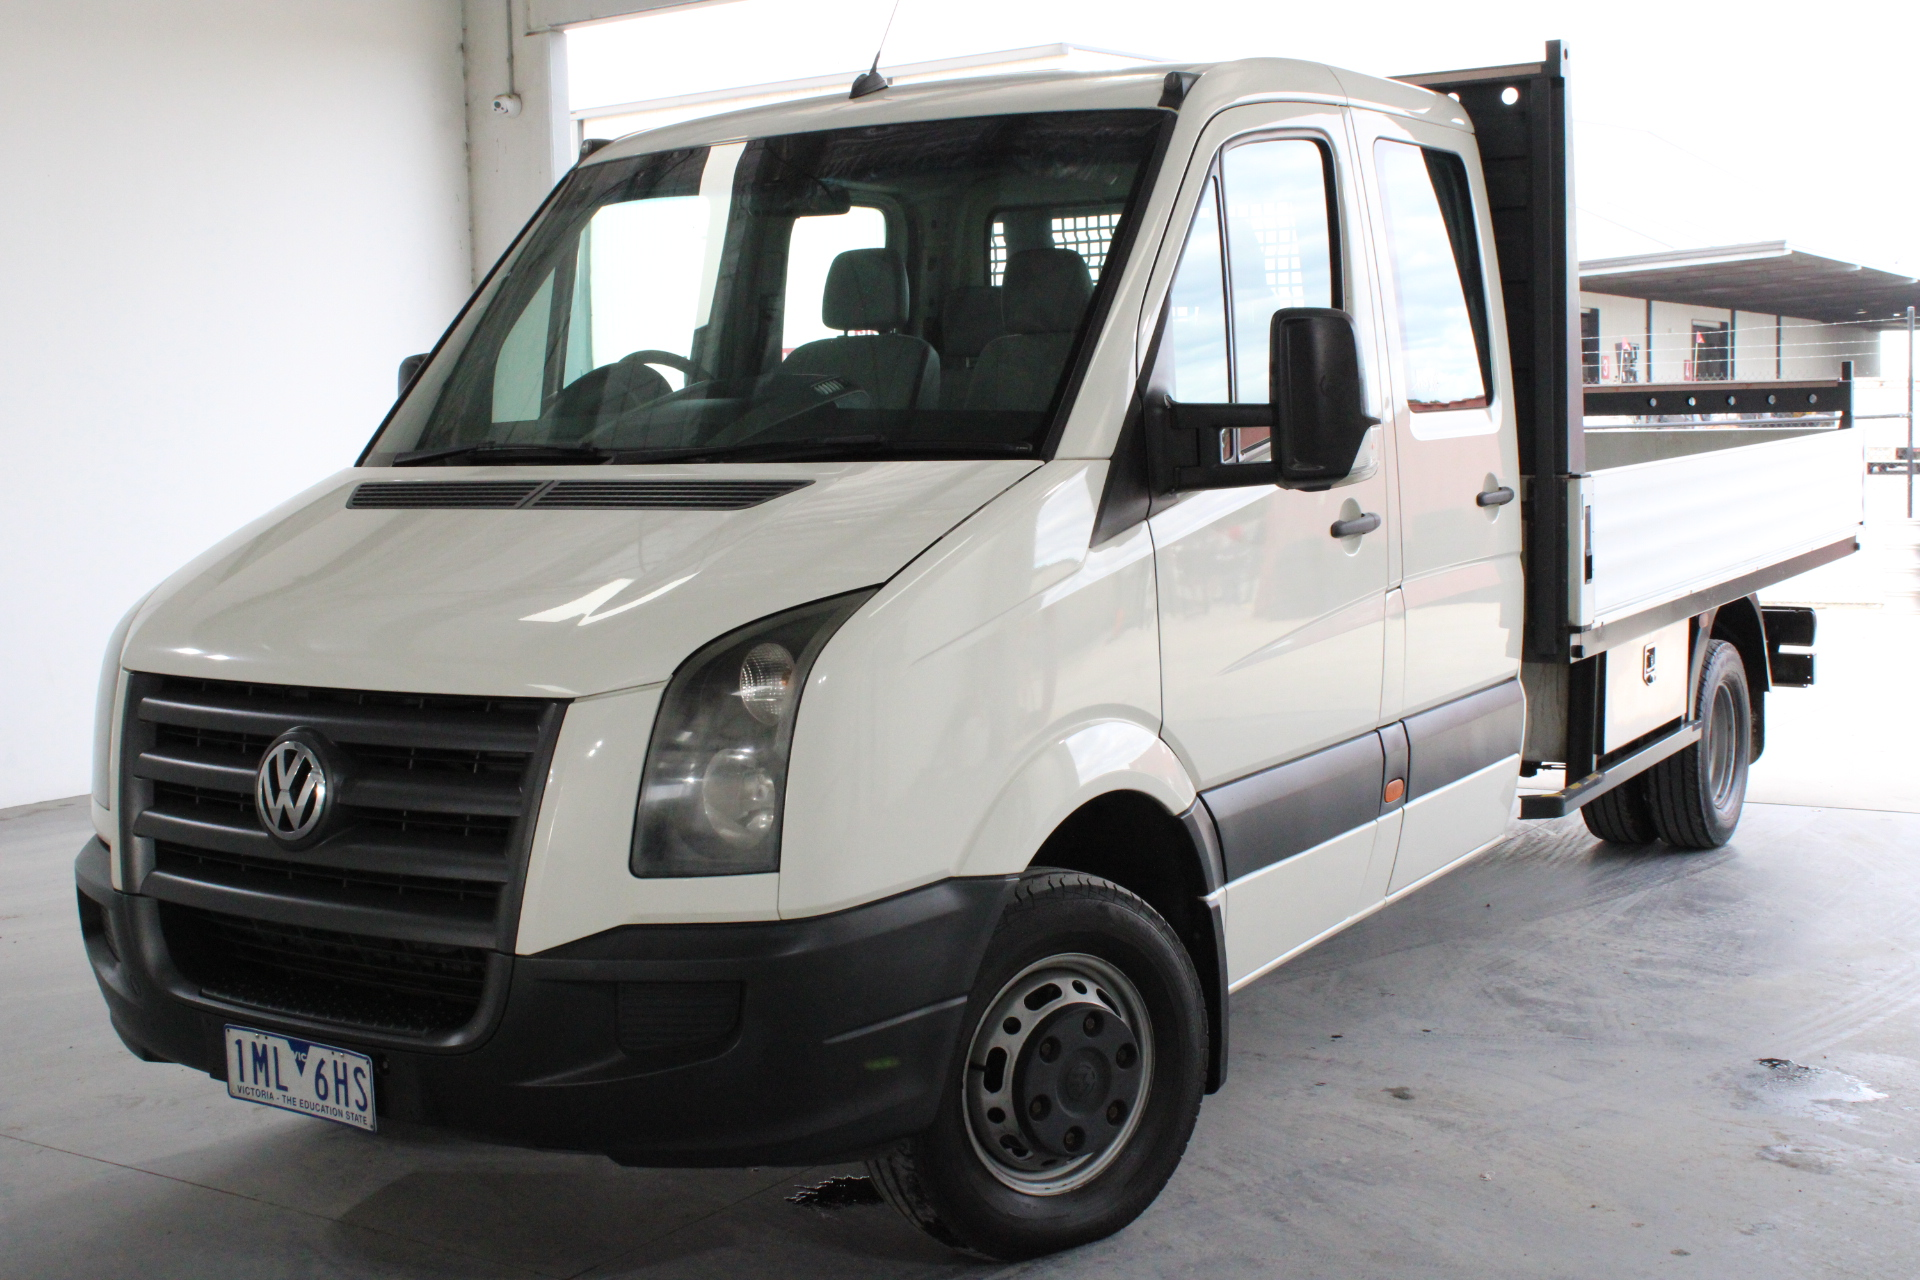 2009 Volkswagen Crafter 50 LWB Turbo Diesel Manual 7 Seats Crew Cab Chassis